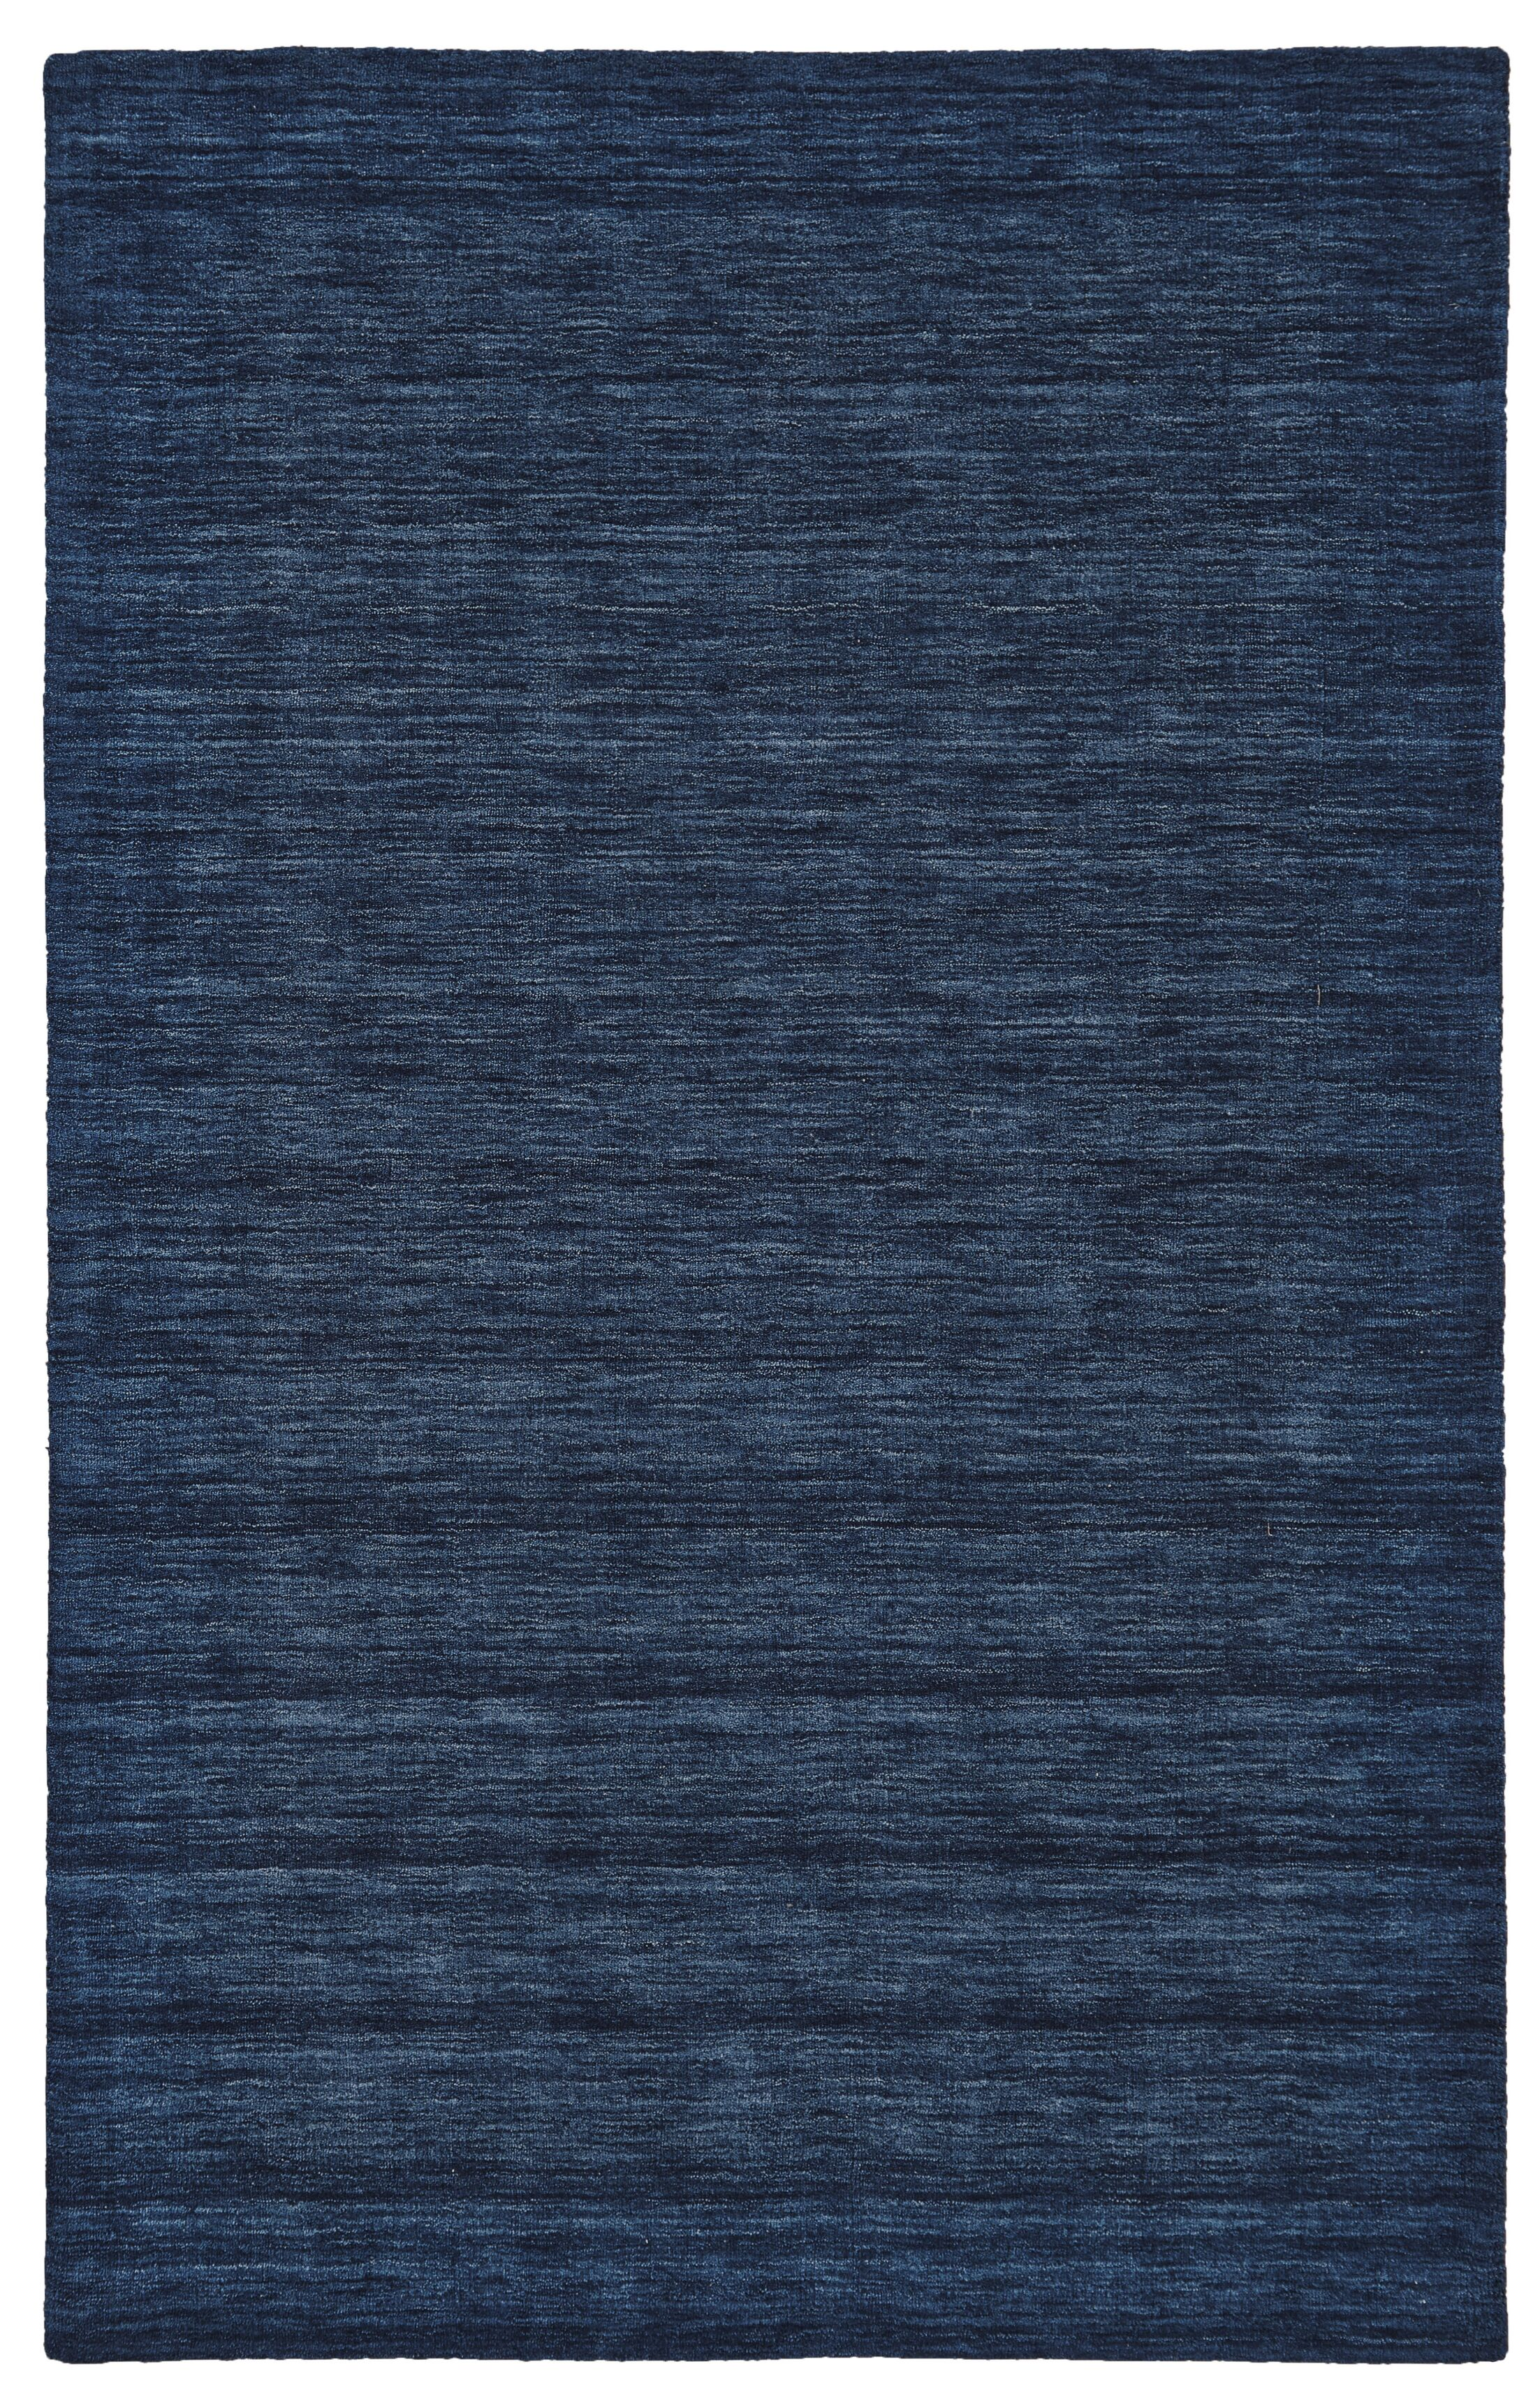 Larissa Hand-Woven Dark Blue Area Rug Rug Size: Rectangle 3'6